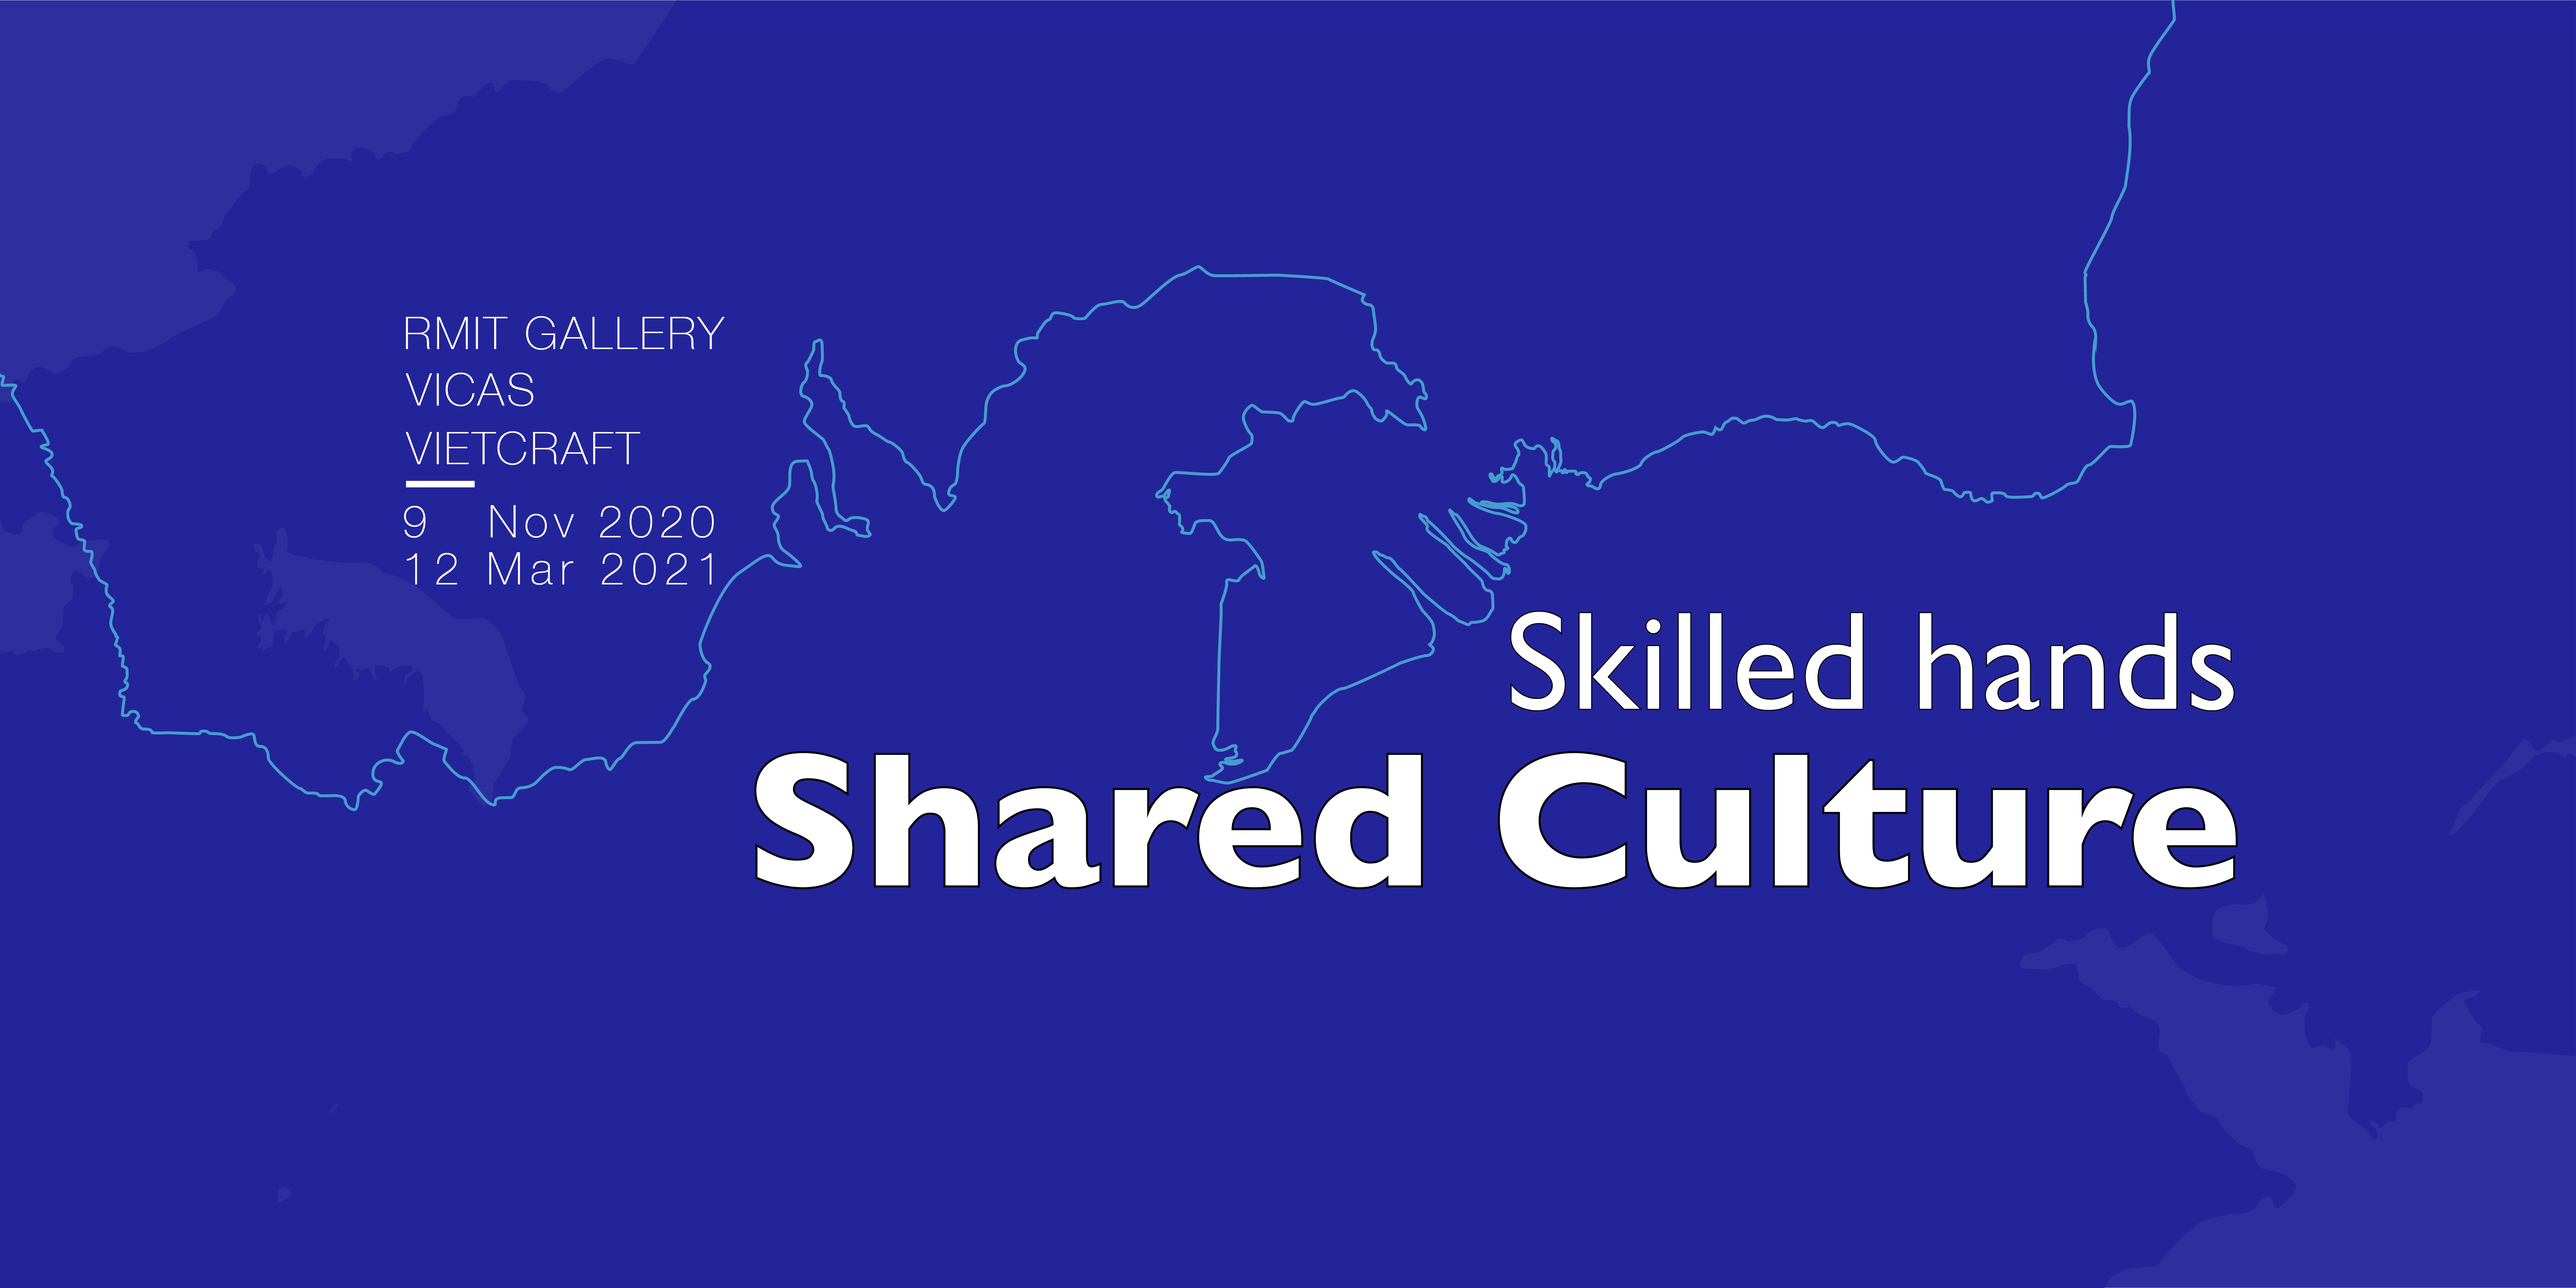 The Skilled Hands Shared Culture Branding depicts the coastlines of Vietnam and Victoria